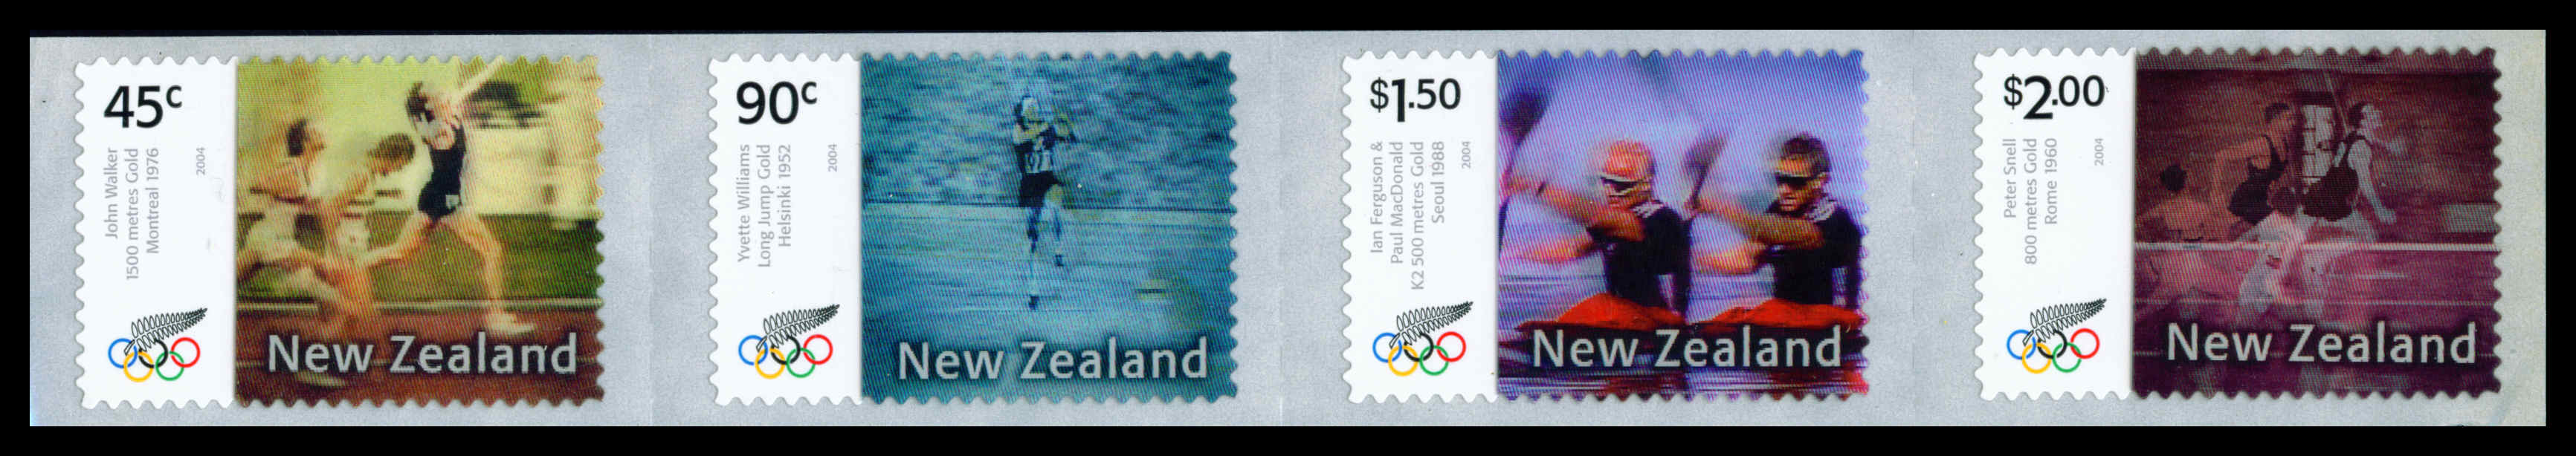 2004 NZ - Olympic Games Gold Medal Winners S/A Strip (4) MNH